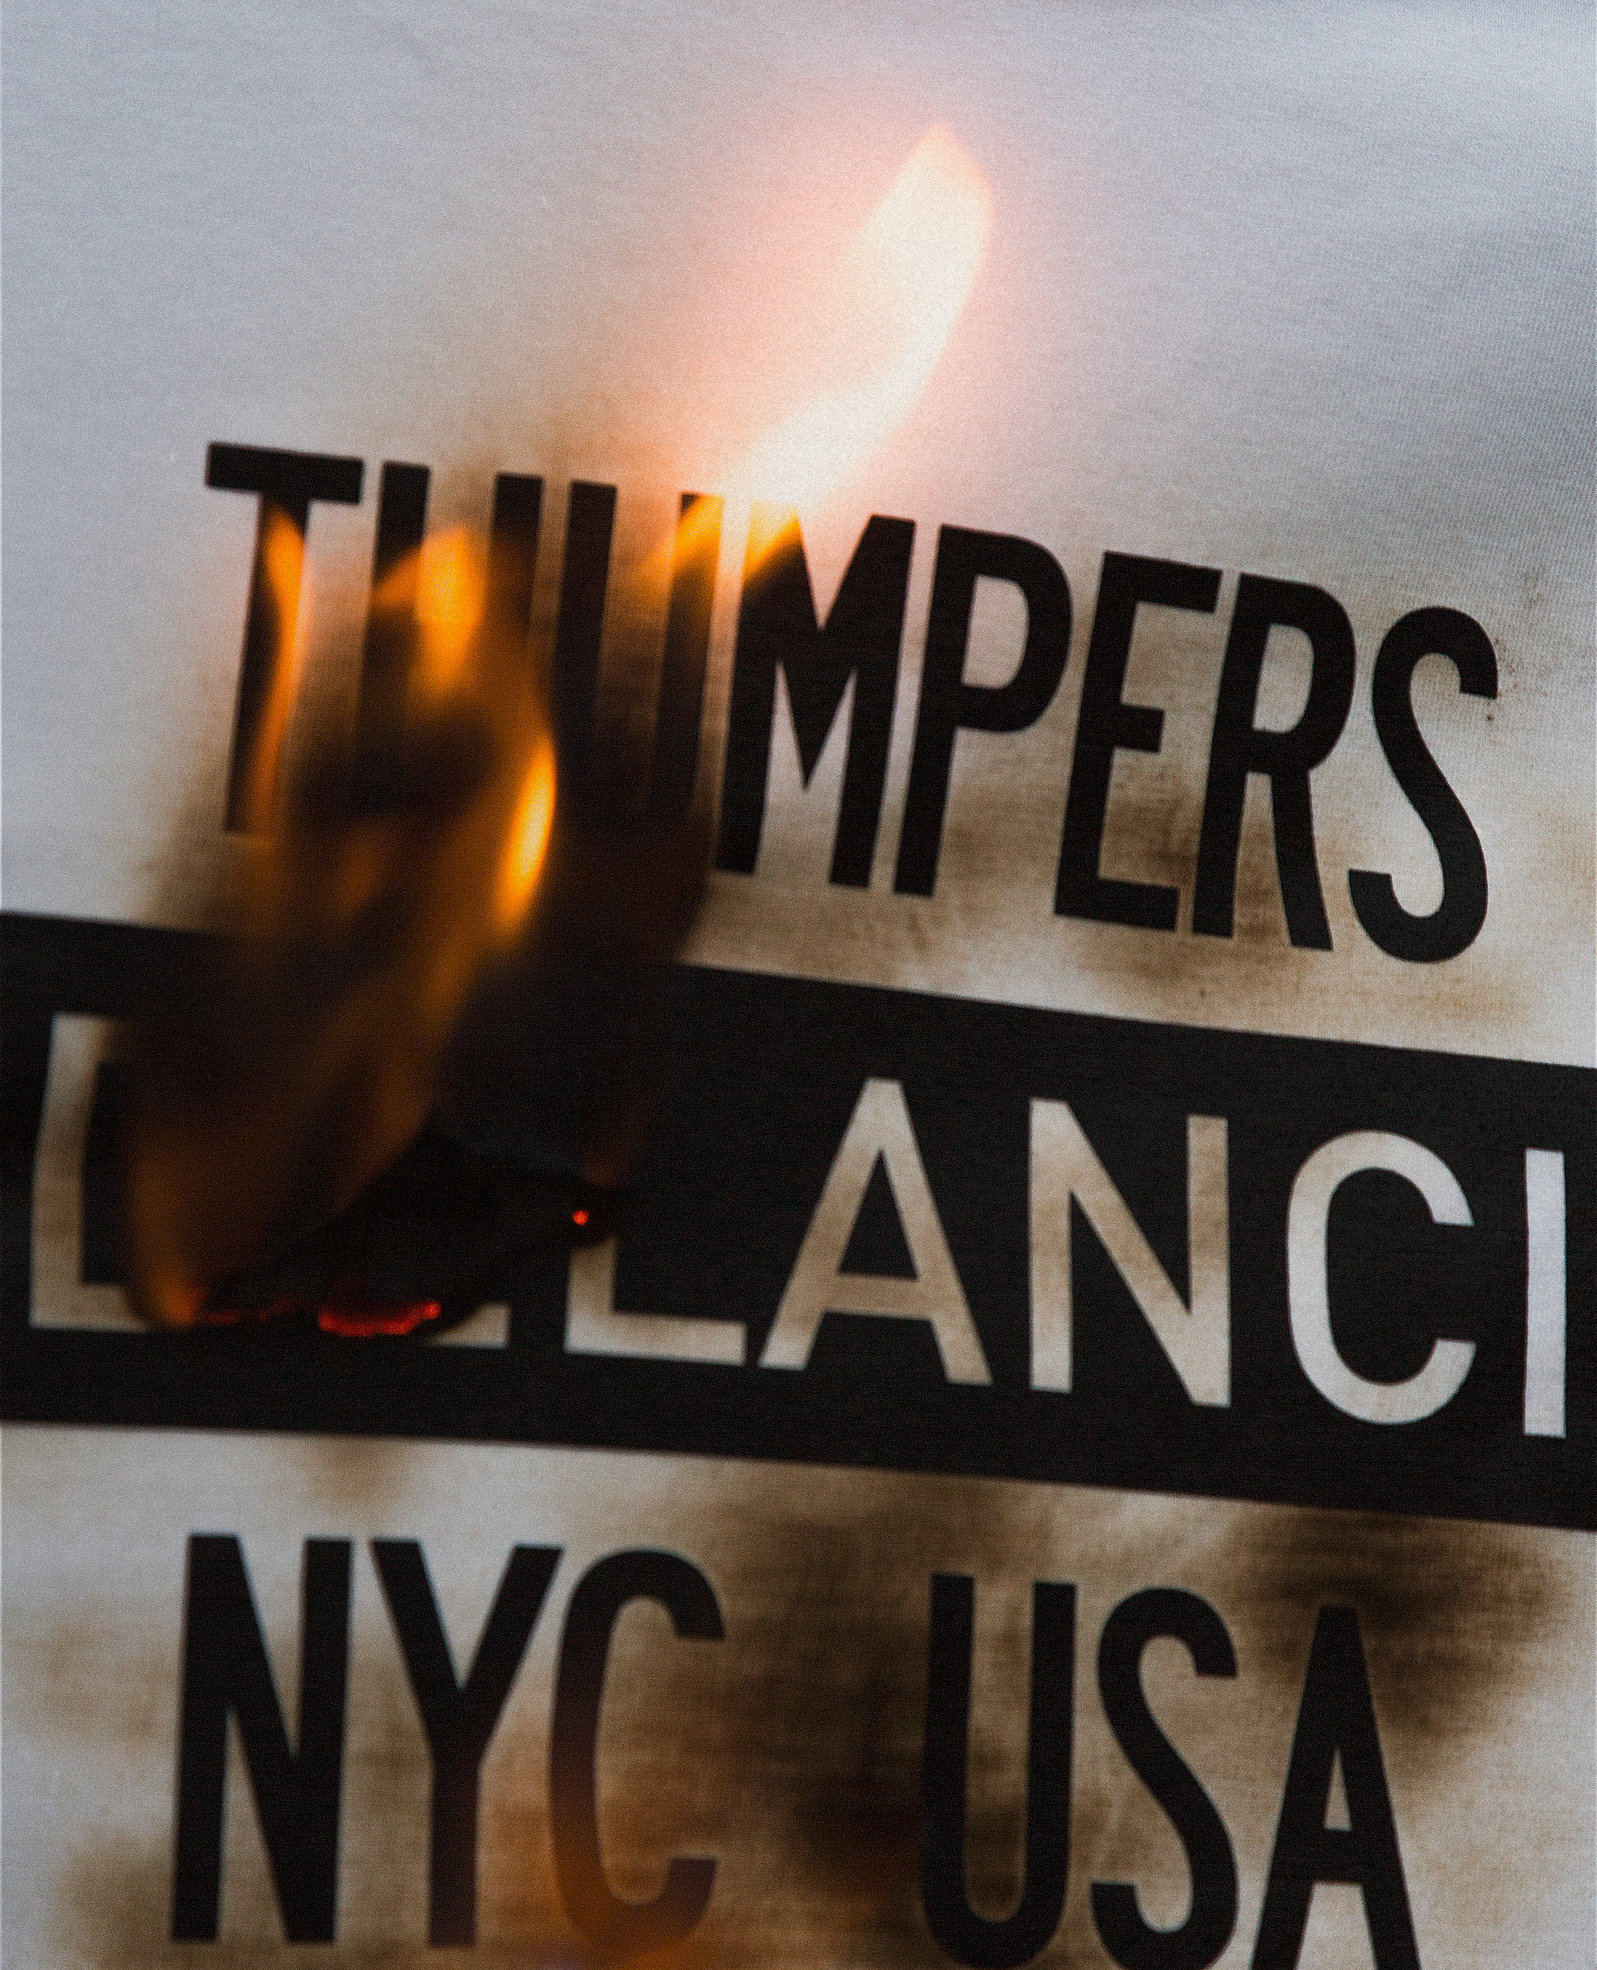 delanci_thumpers_selects_0046.jpg